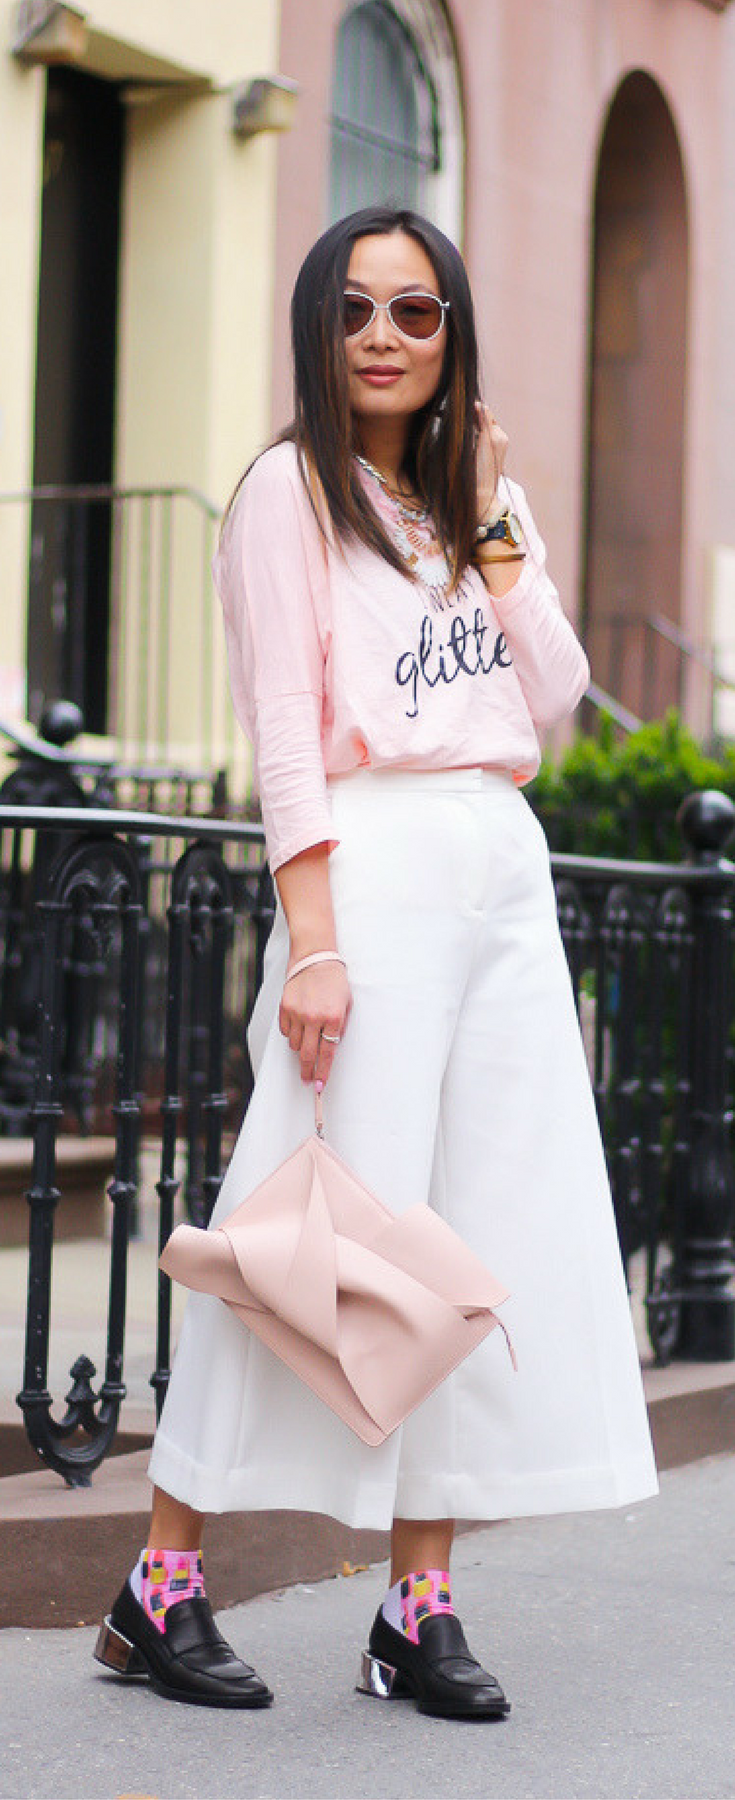 74d568c7b48a White culottes outfit, pink and white outfit ideas, no.21 knot clutch,  Layers of Chic style blogger outfit. See the post on www.layersofchic.com